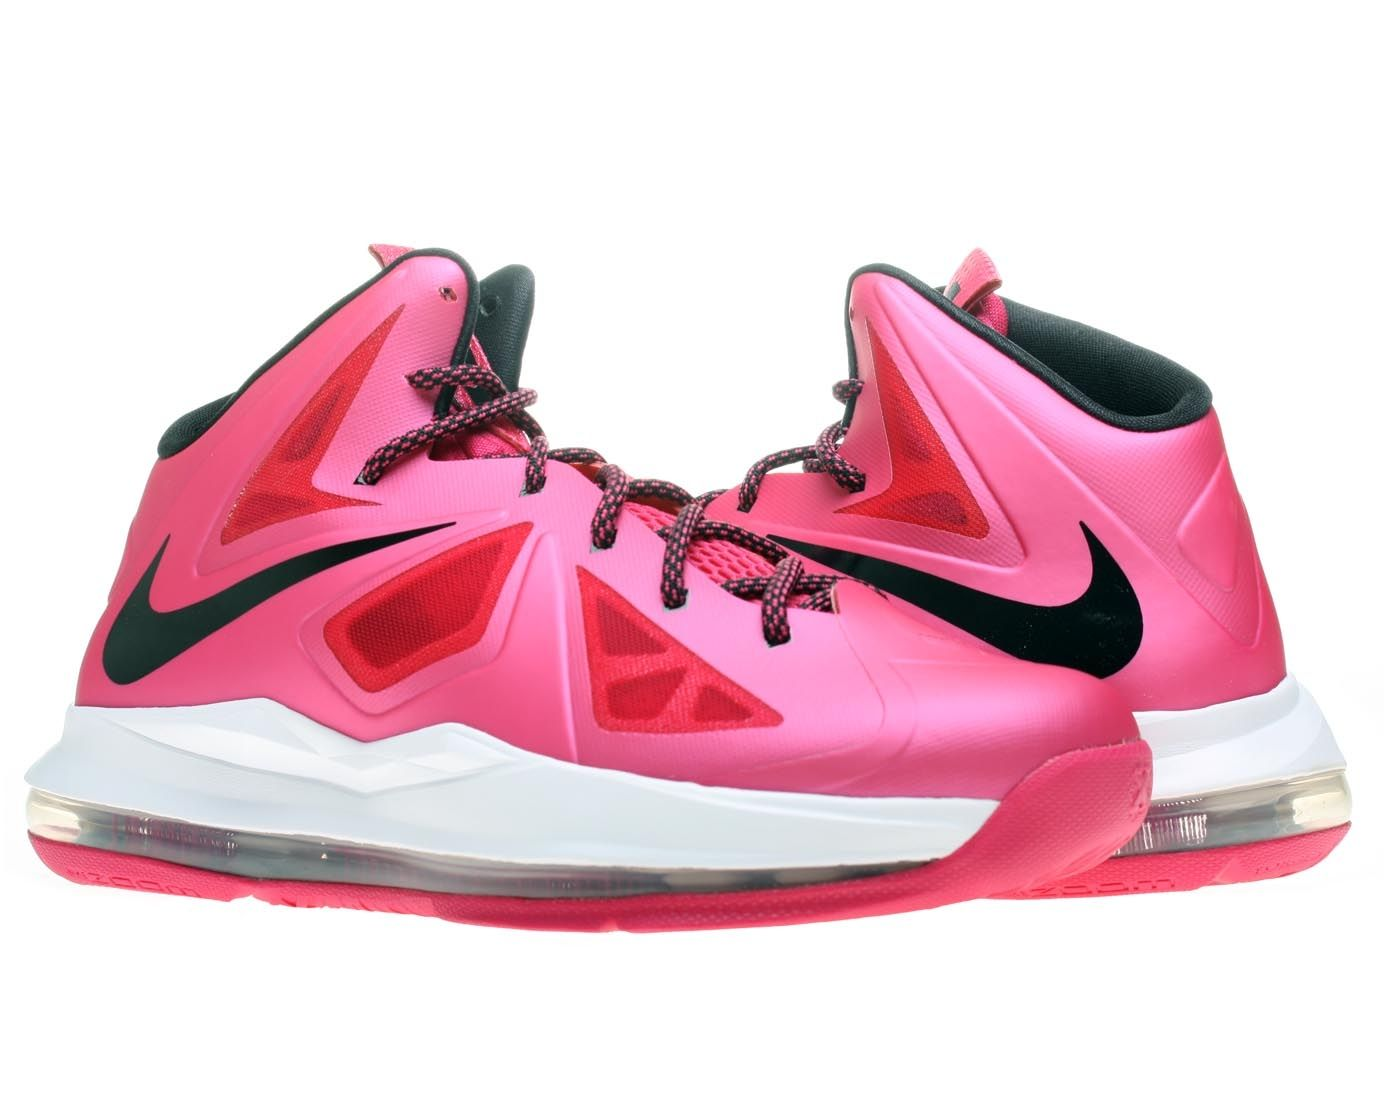 adecuado Conciliar Sur  Pin by Vanessa Paterson on Nike basket ball shoes | Girls basketball shoes, Nike  basketball shoes, Basketball shoes